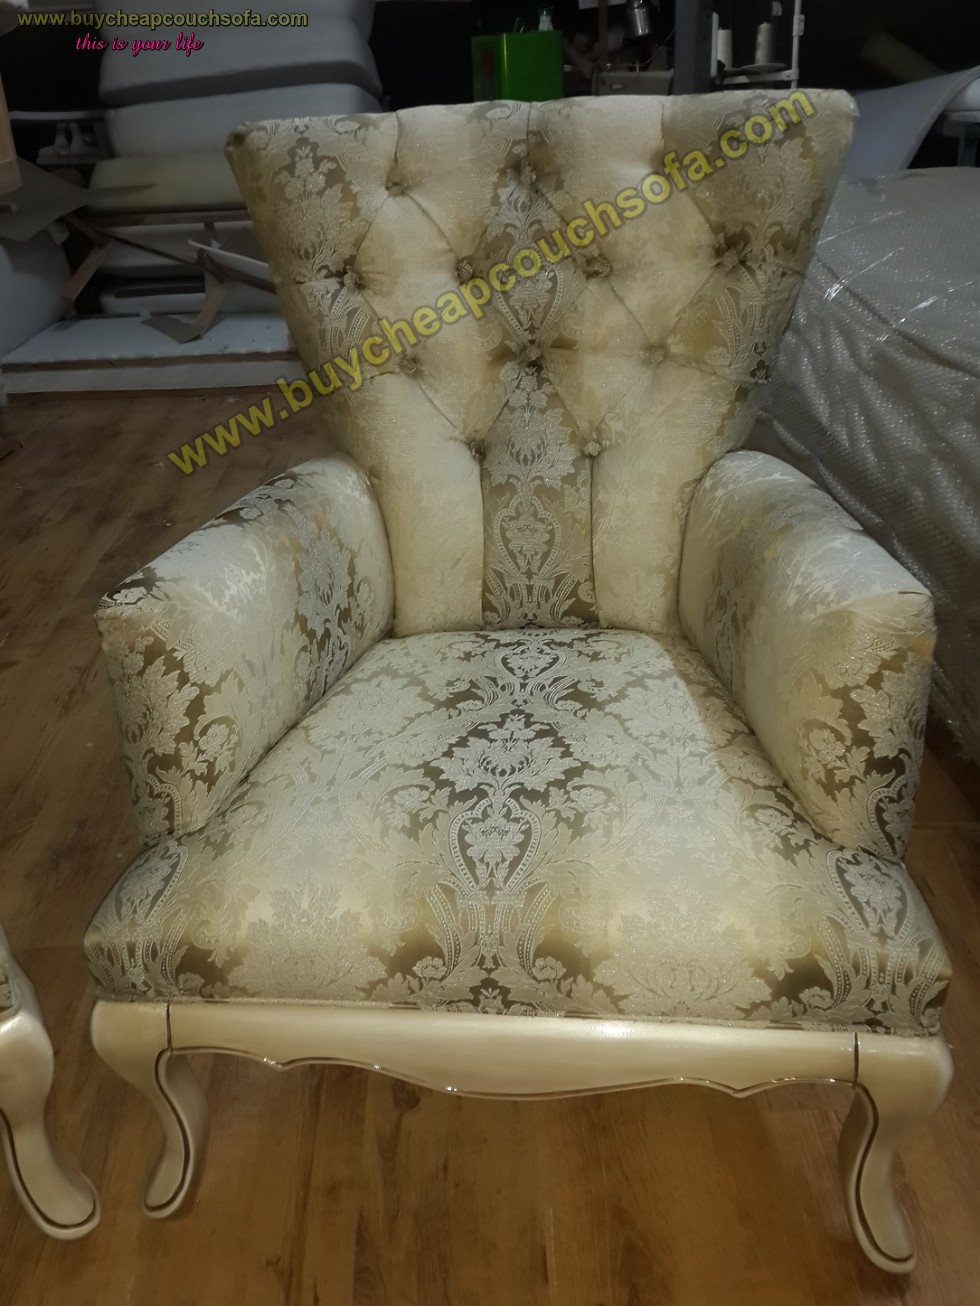 Kodu: 10227 - Luxury Wooden Armchair Carved Accent Chair